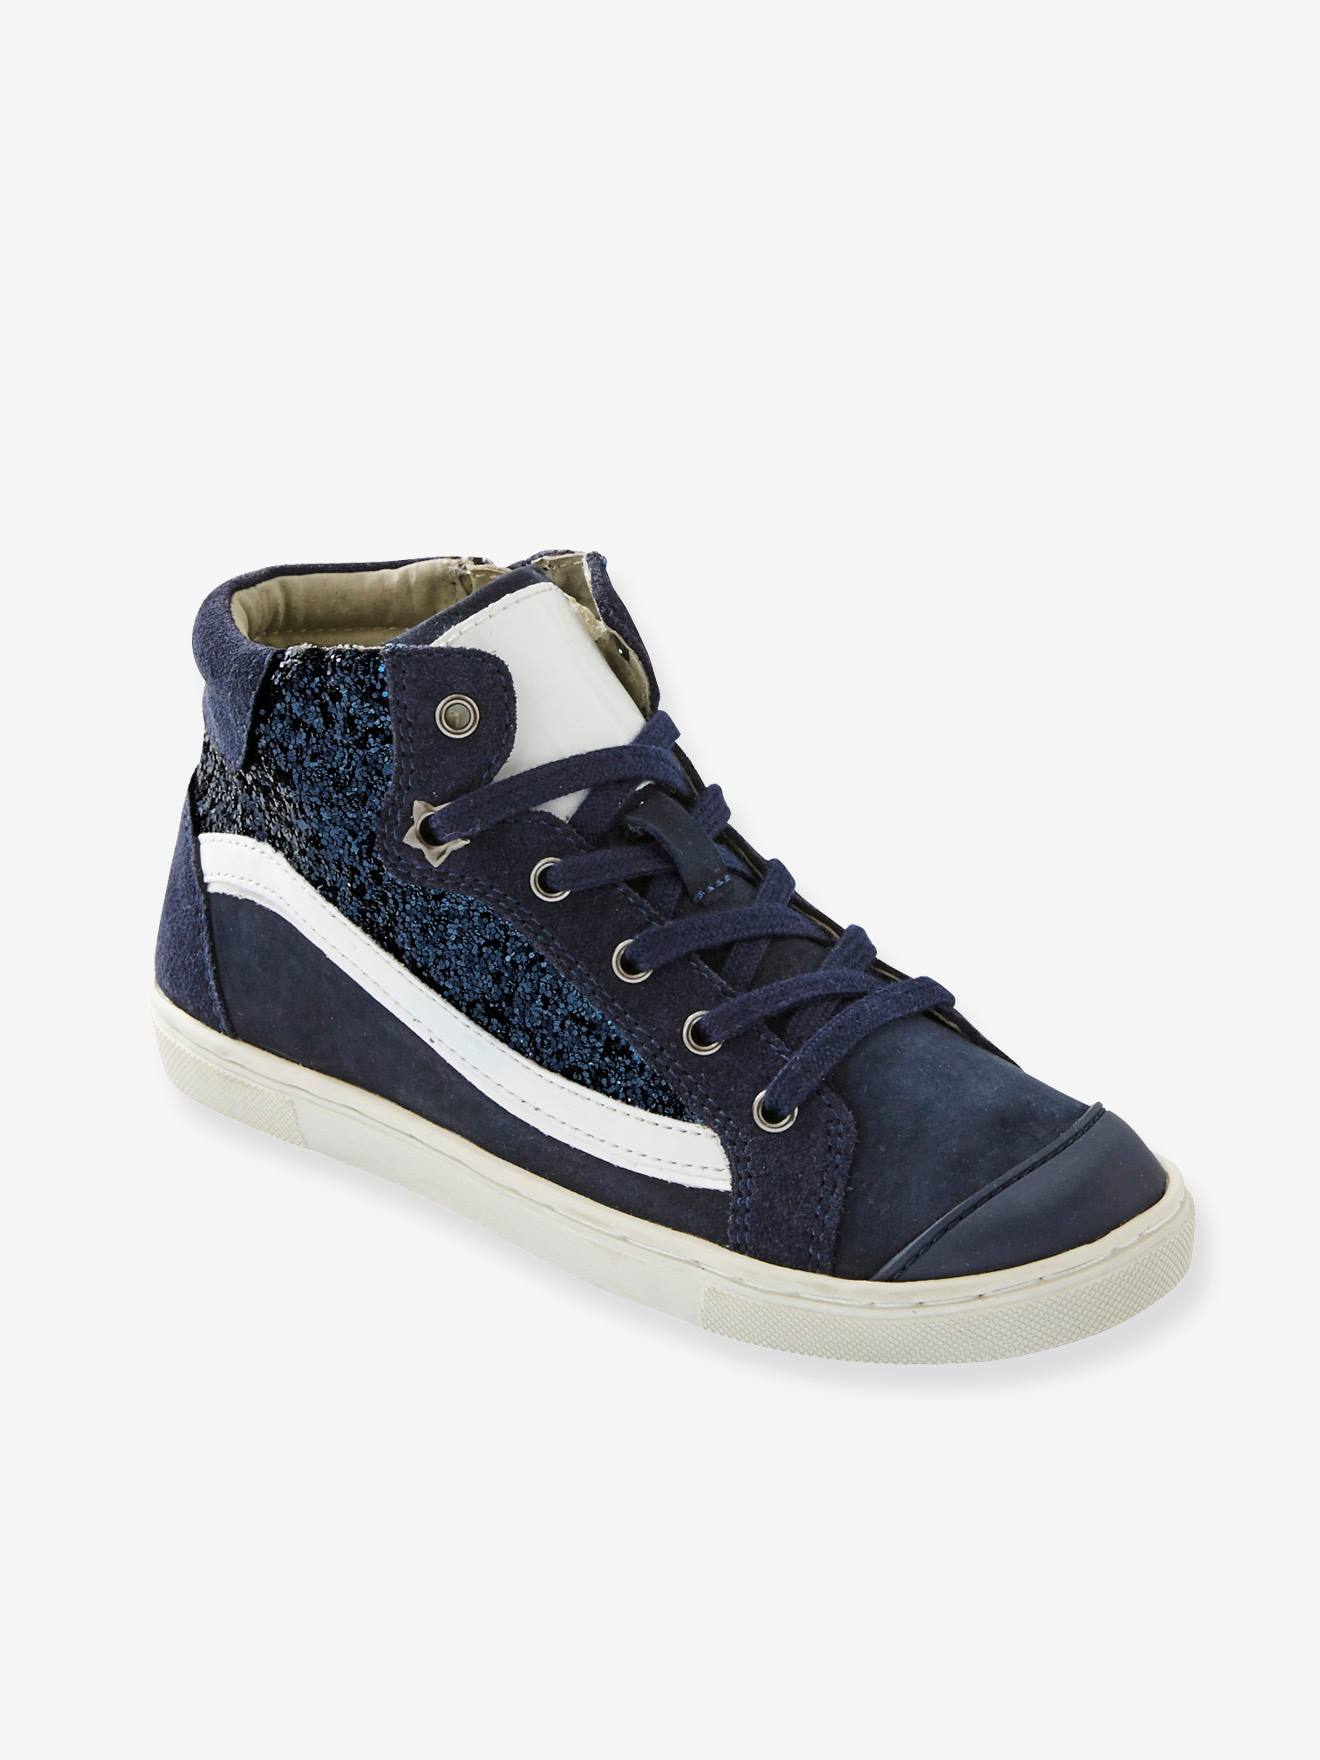 Girls' Leather High-Top Trainers with